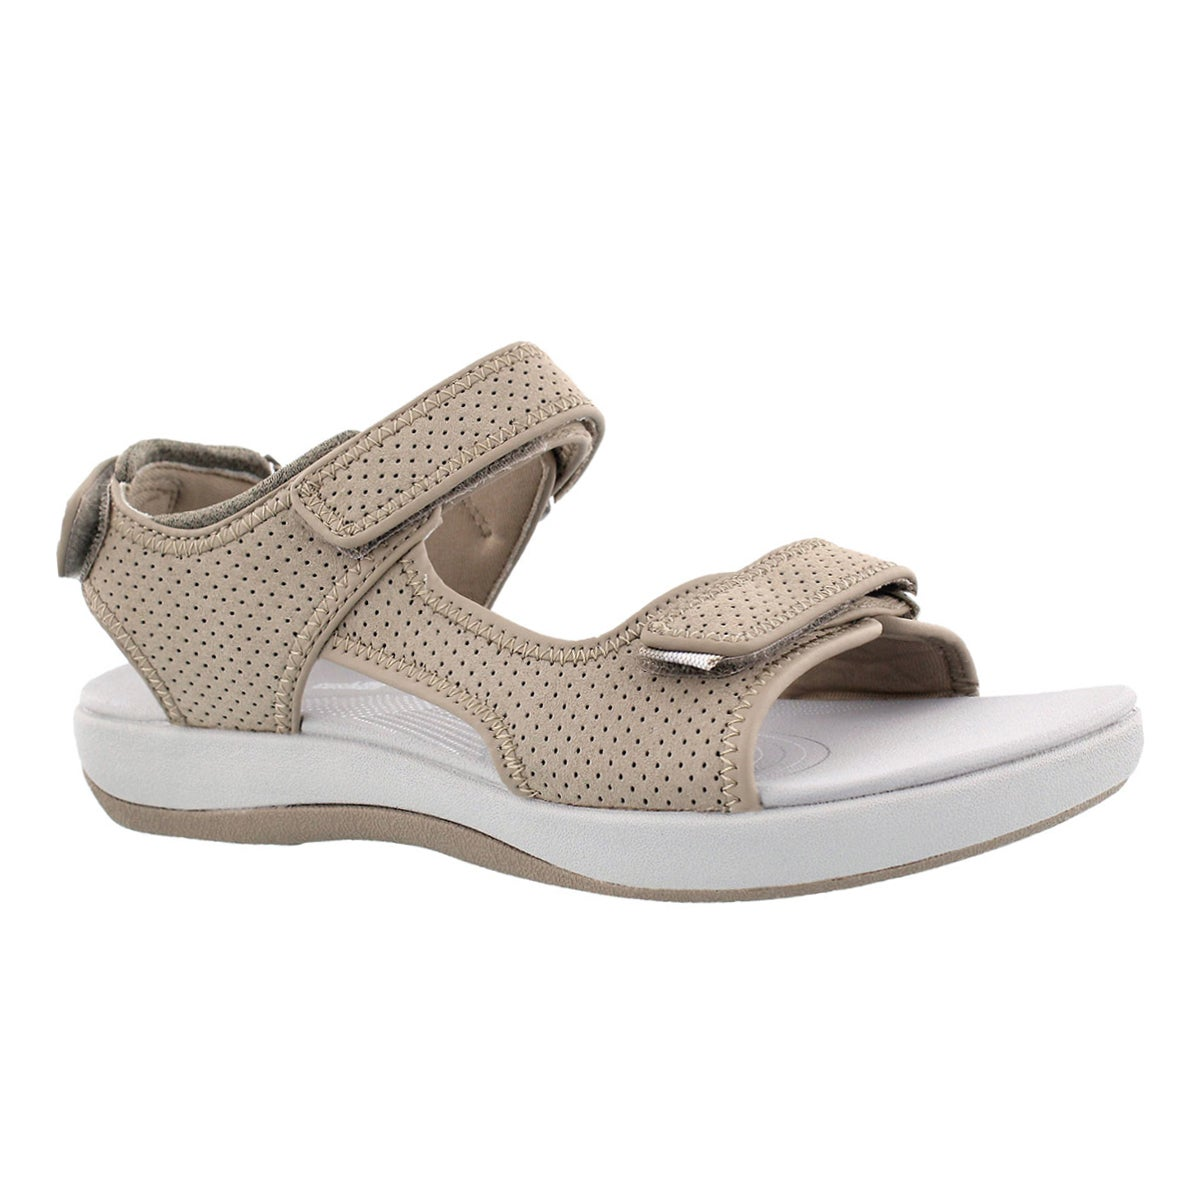 Women's BRIZO SAMMIE sand casual sandals